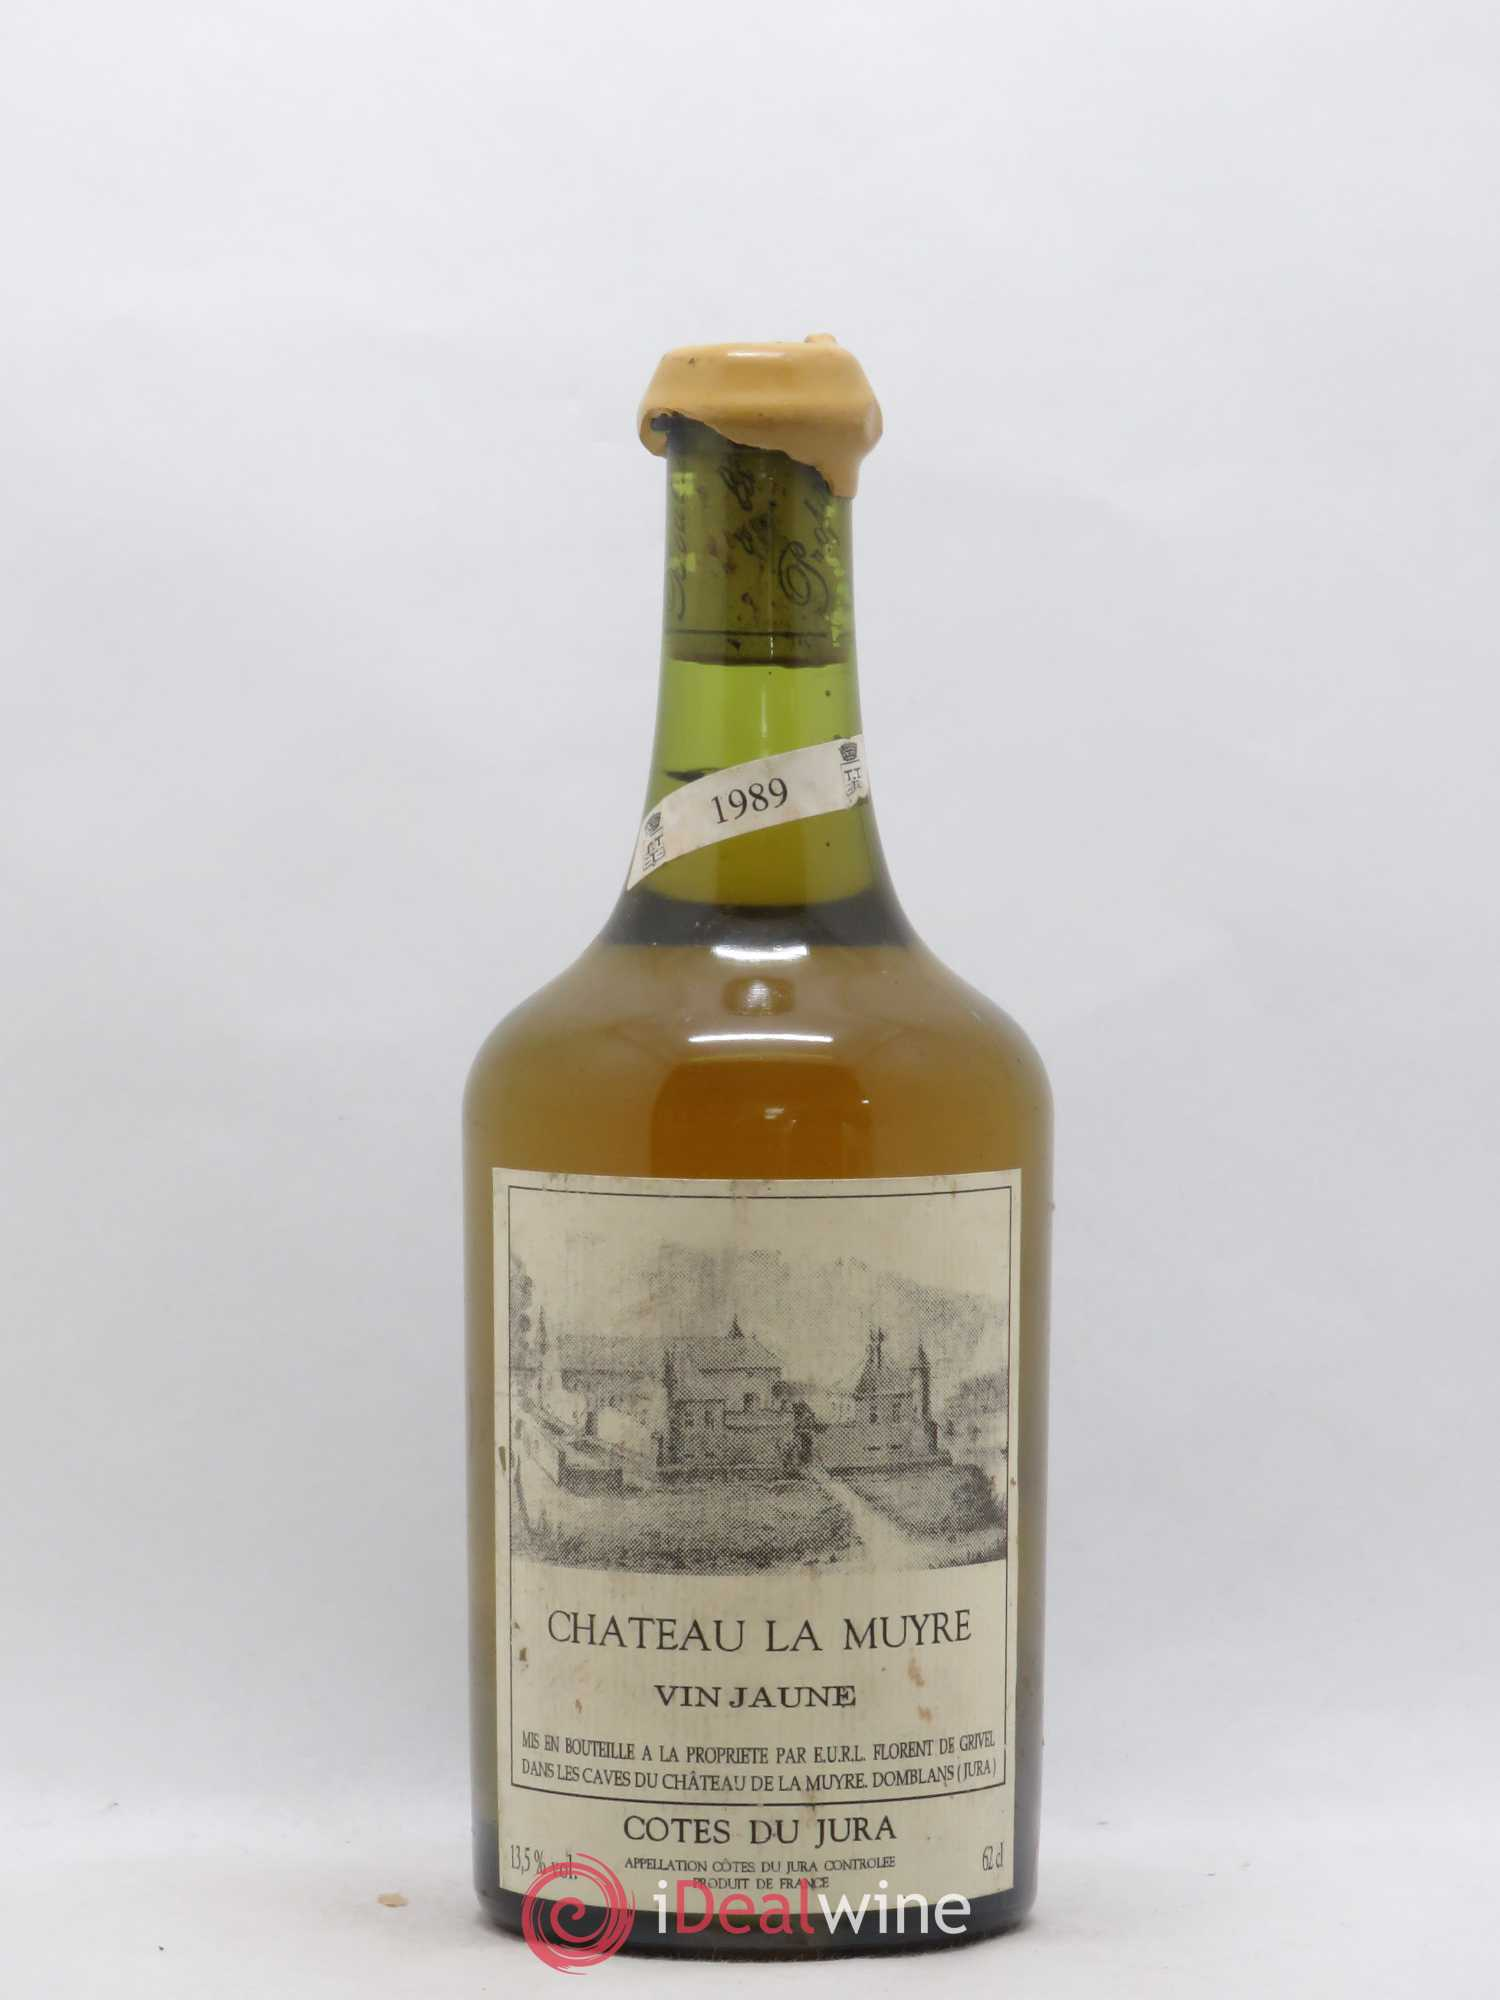 Côtes du Jura Vin Jaune Château la Muyre 1989 - Lot of 1 Bottle